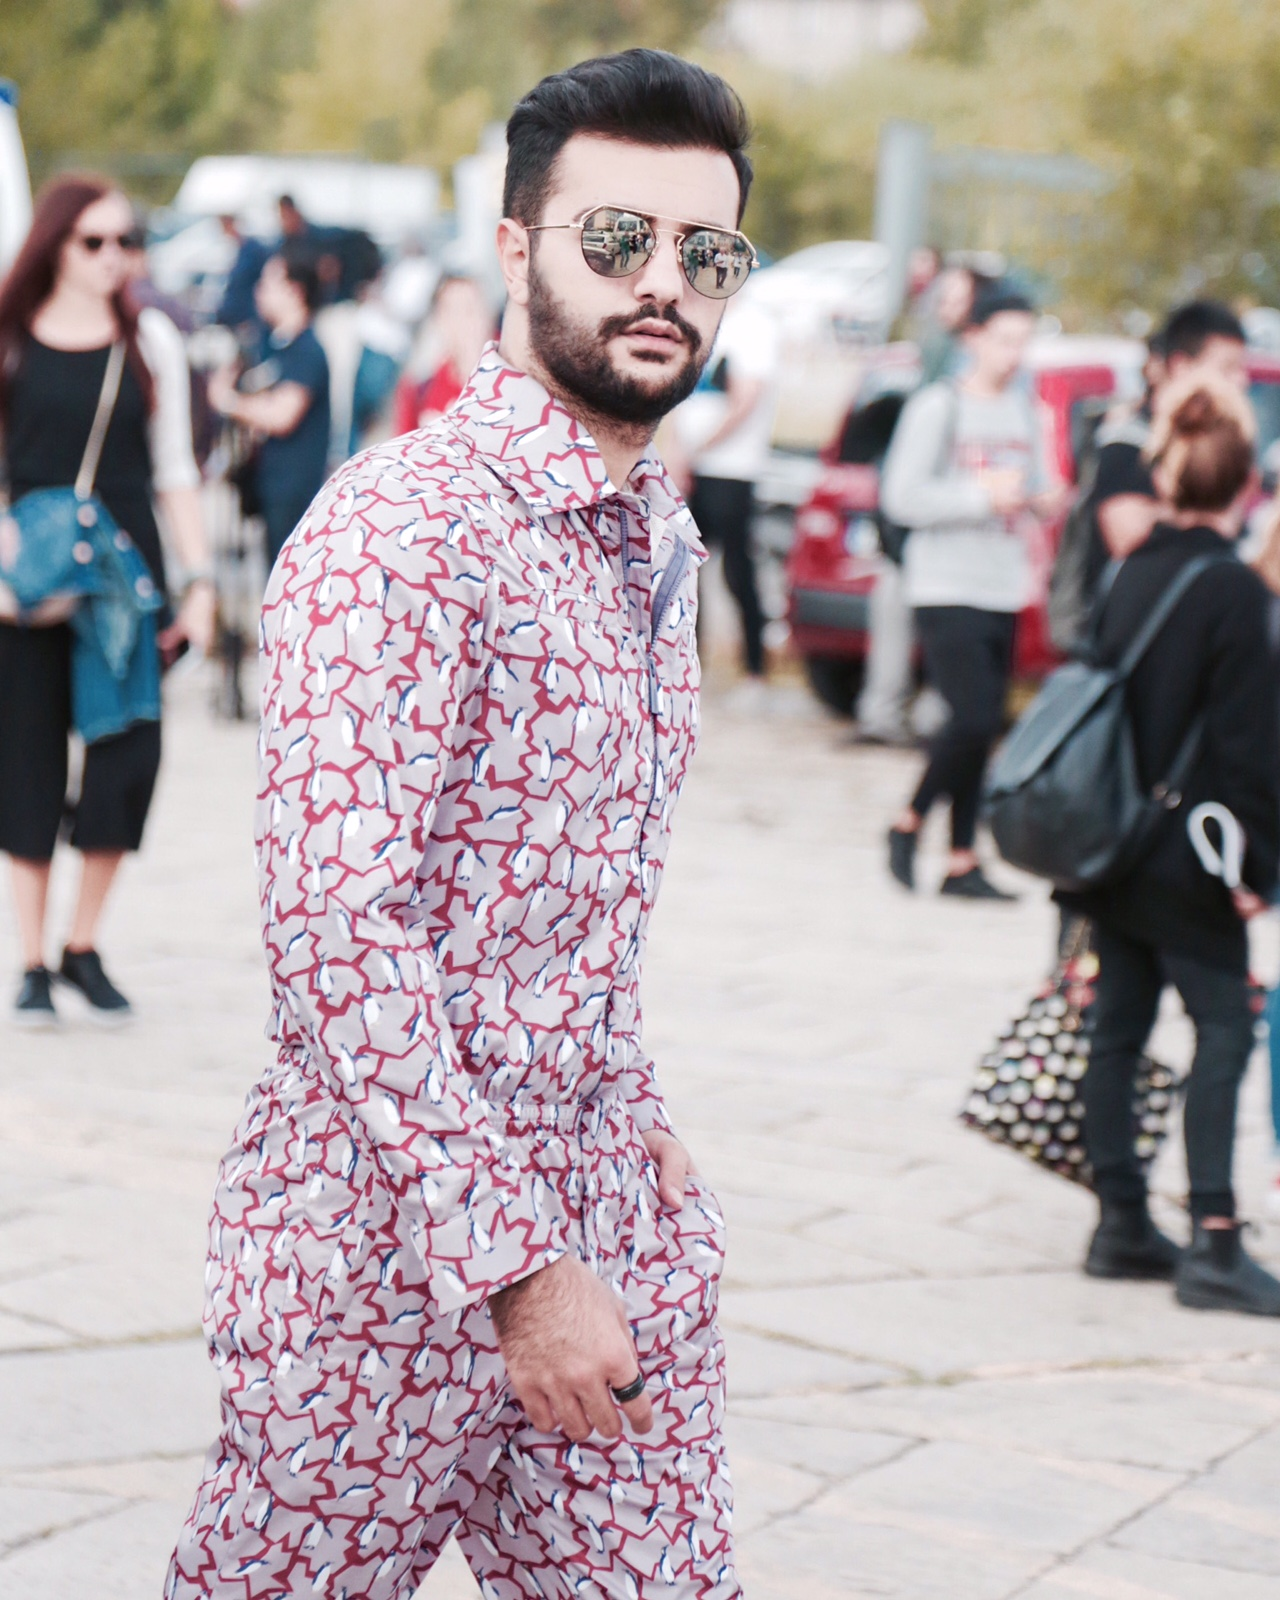 milano-fashion-week-ss2017-street-style-kubilay-sakarya